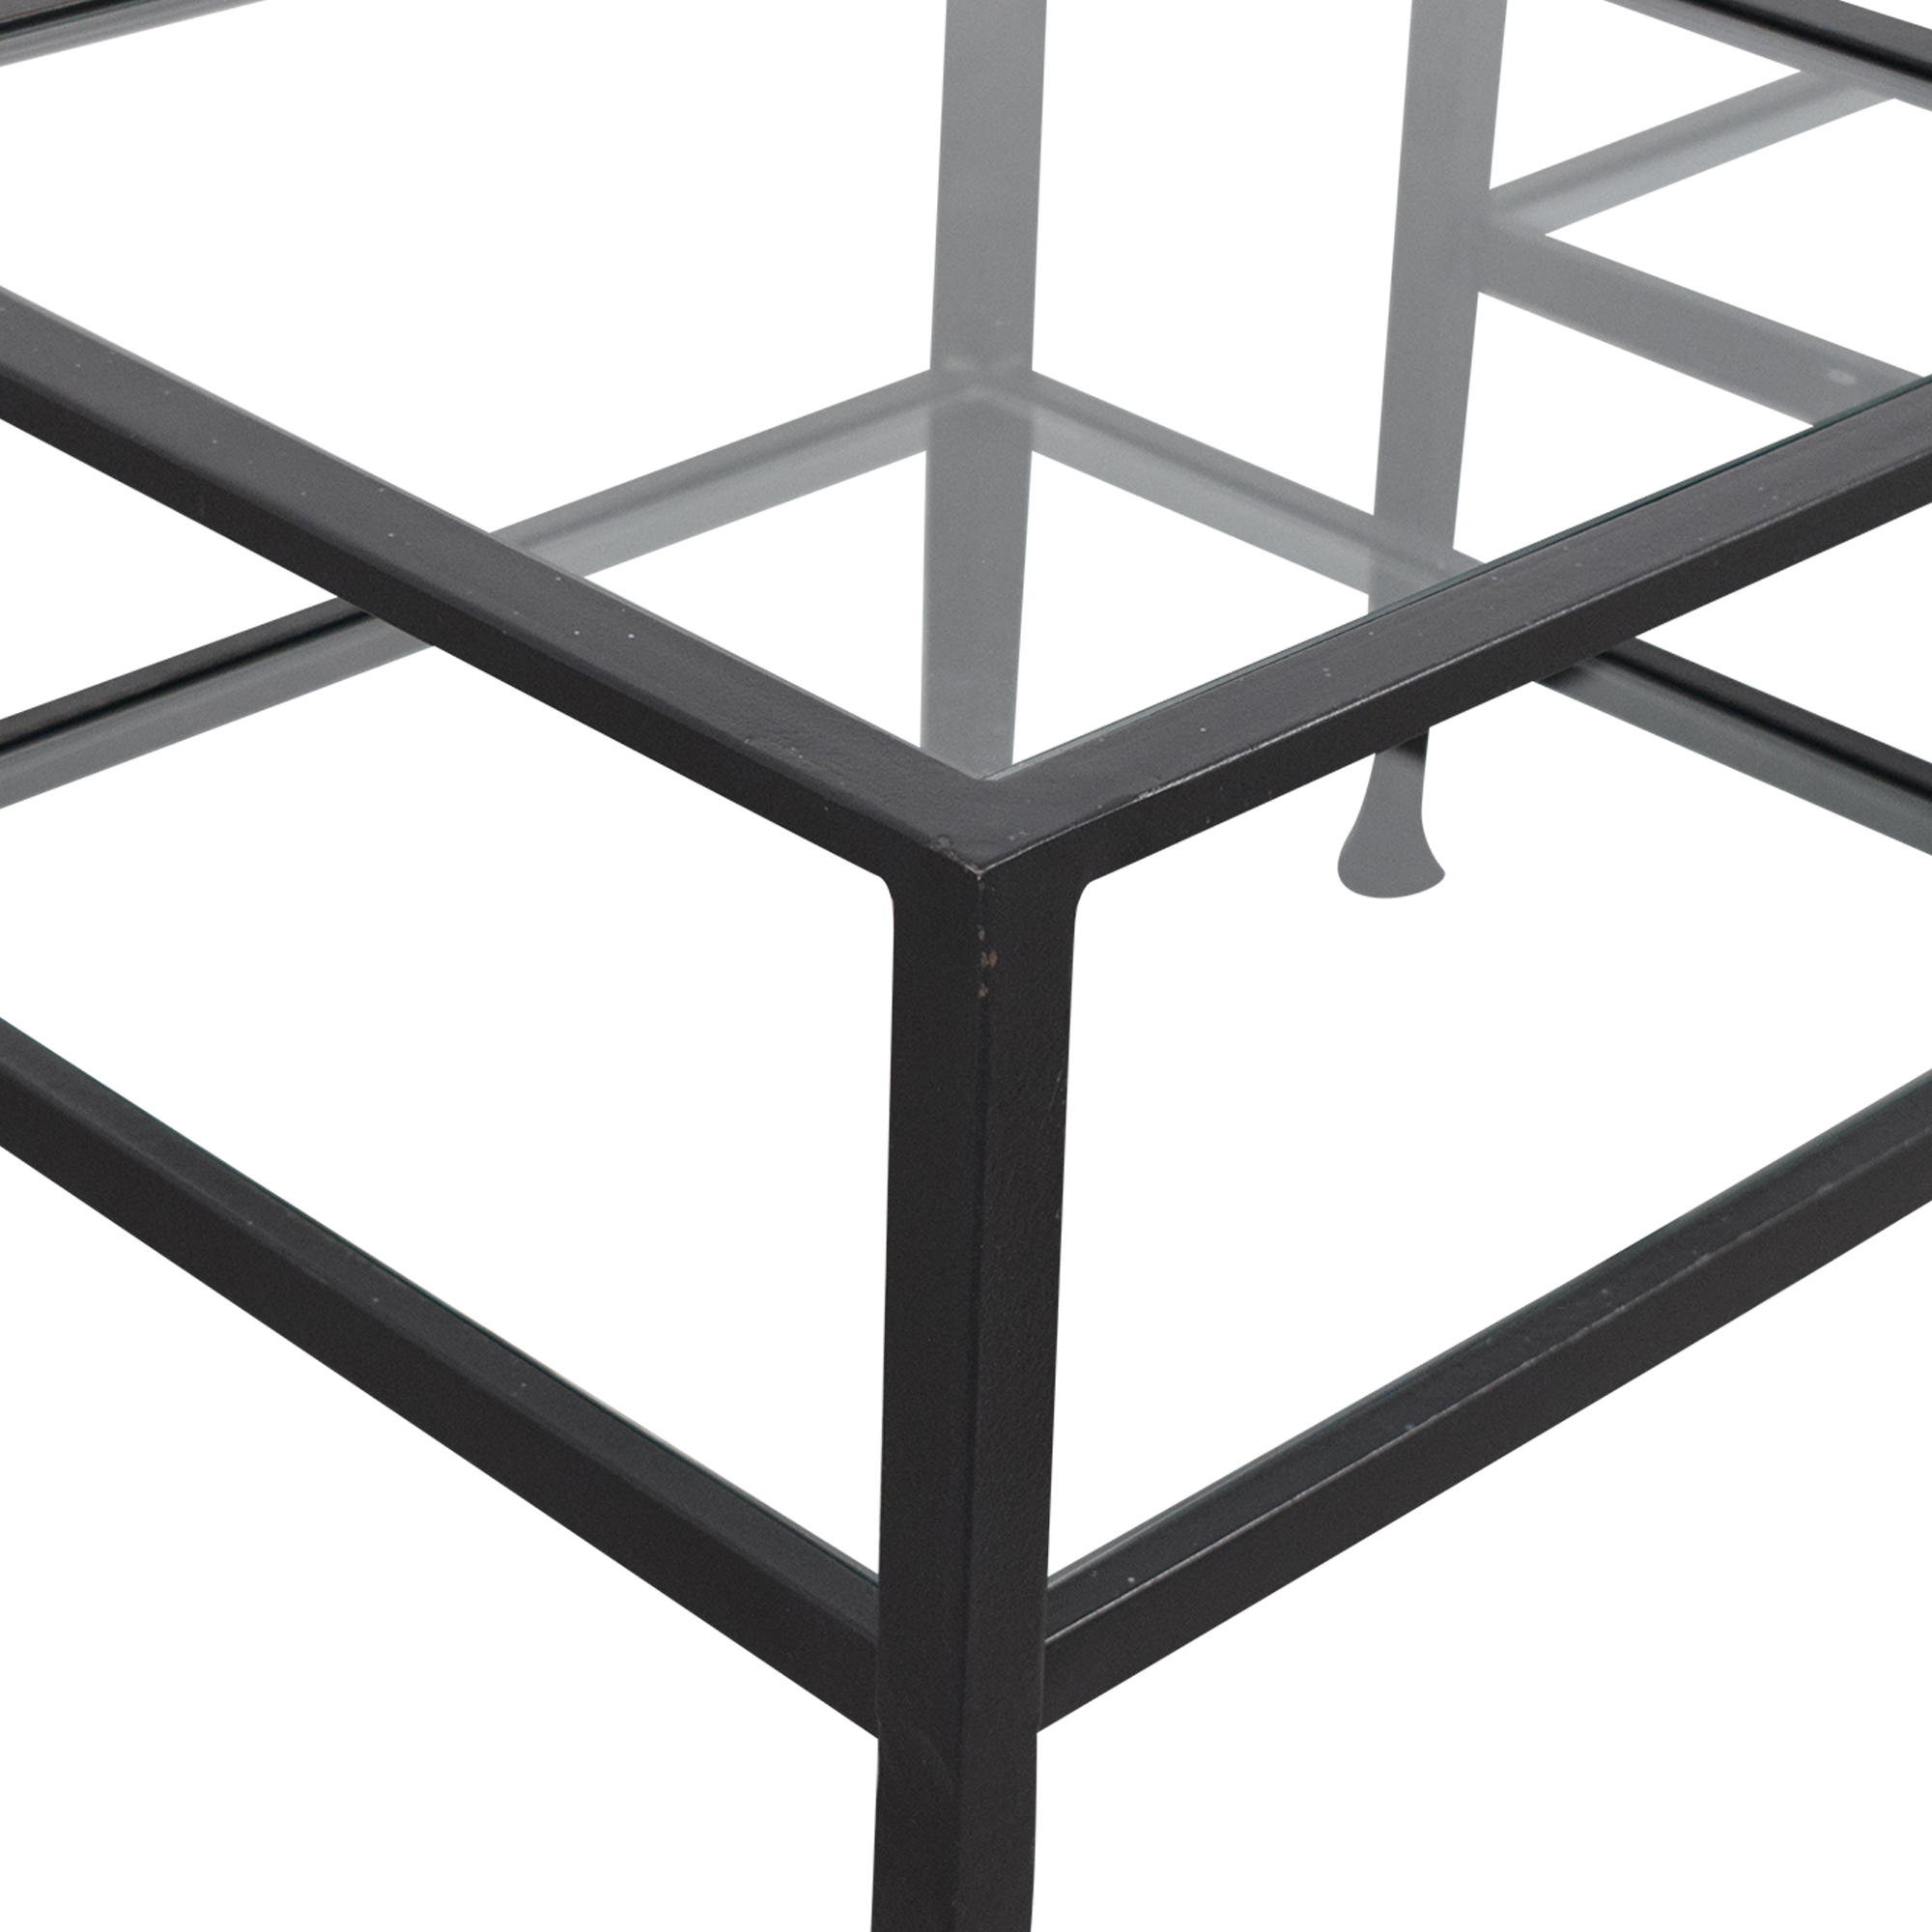 Pottery Barn Pottery Barn Tanner Cube Coffee Tables ma